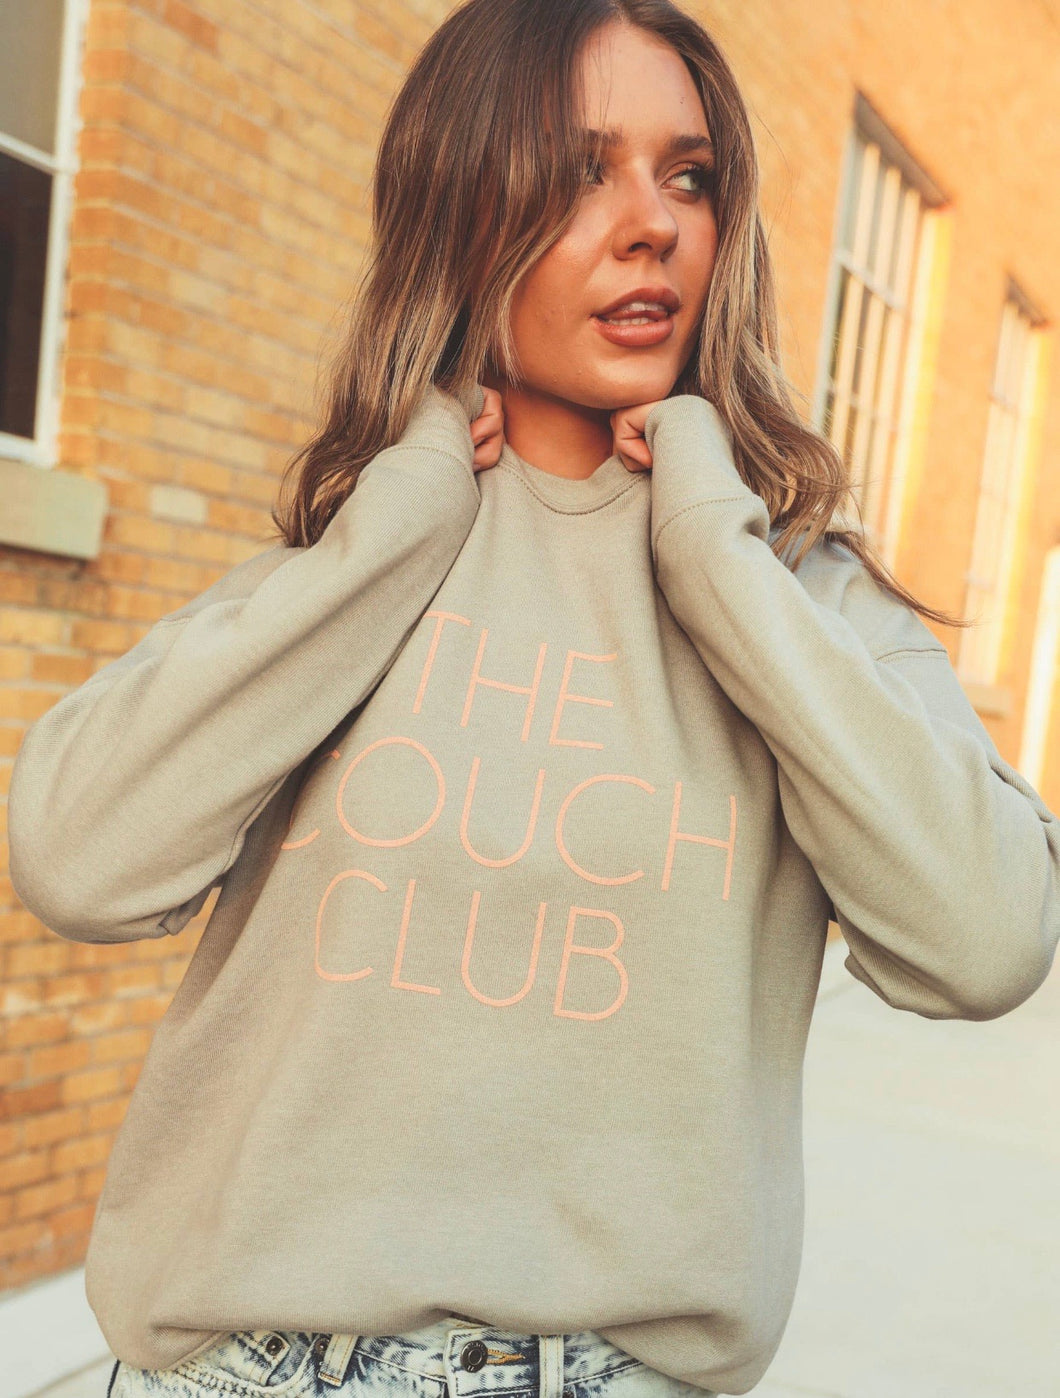 IN ROUTE / Couch Club Sweatshirt!!